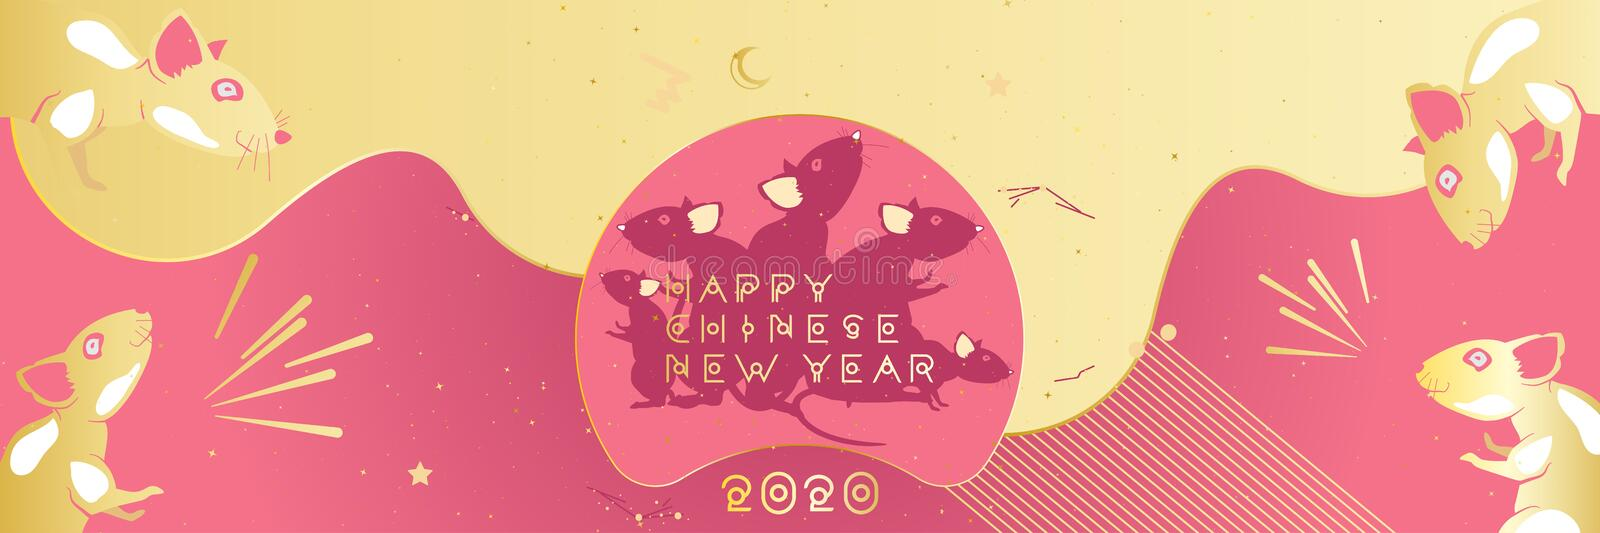 Chinese new year 2020 year of the rat. Greeting card with family rats and golden moon on a pink background. Original typeface in royalty free illustration